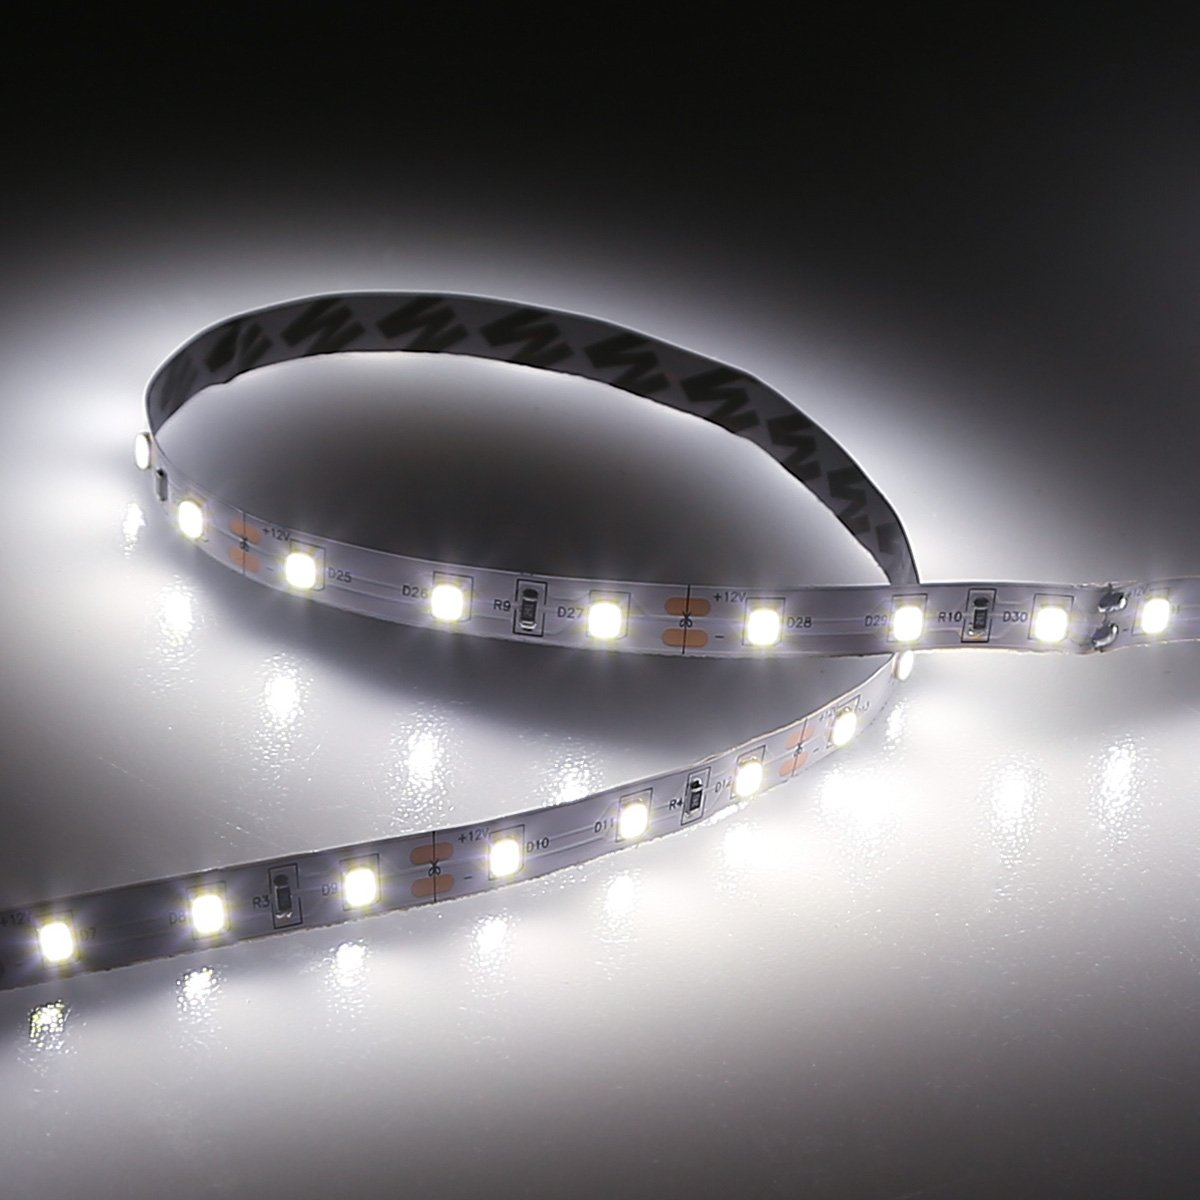 Amazon le 2 pack 164ft flexible led light strip 300 units smd amazon le 2 pack 164ft flexible led light strip 300 units smd 2835 led12v dc 5000k daylight white non waterproof led tape led ribbon aloadofball Images